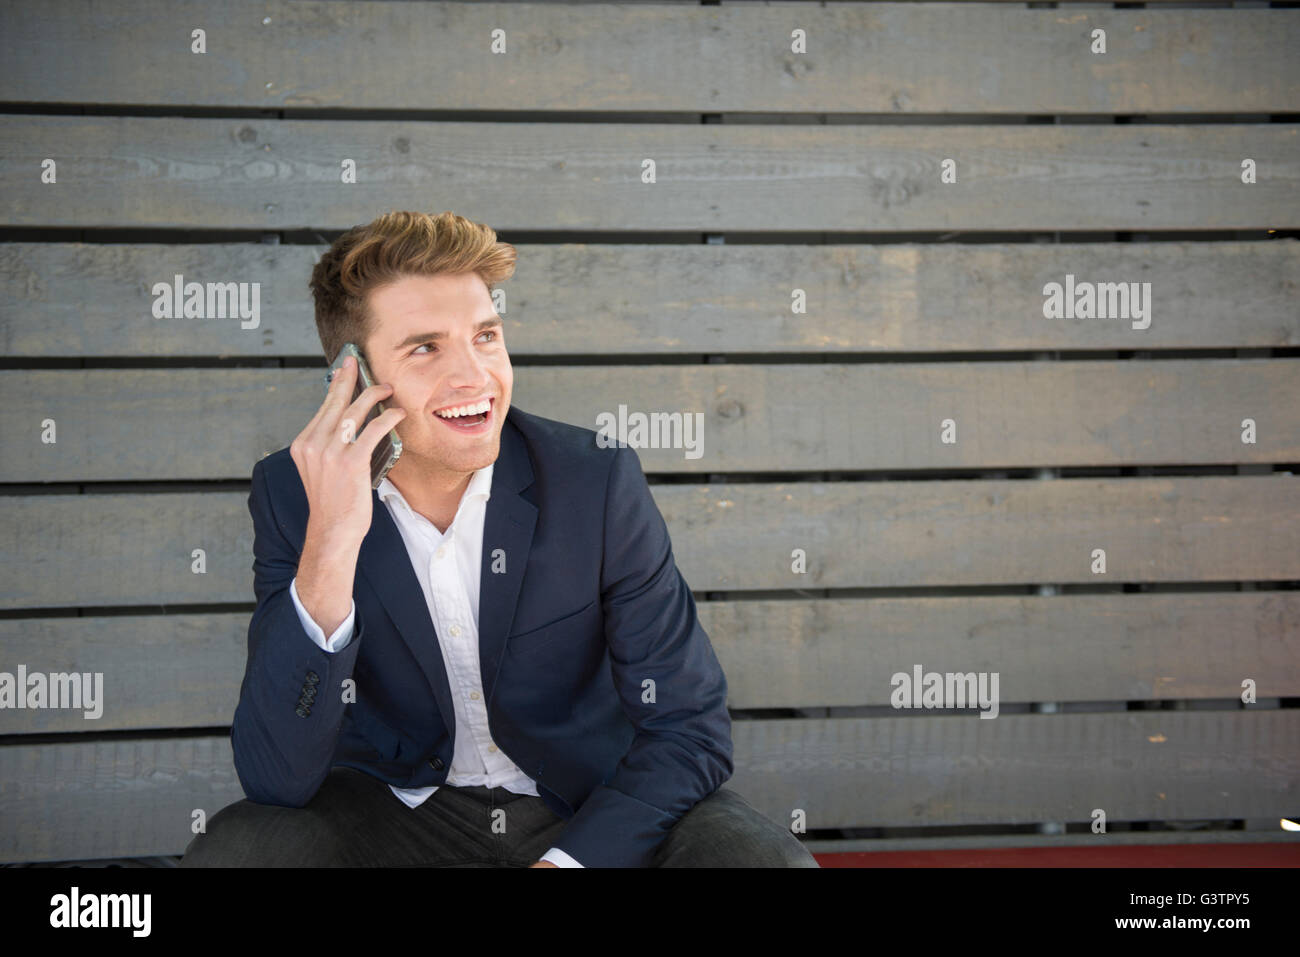 A young man sitting on a bench making a phone call on the South Bank in London. - Stock Image